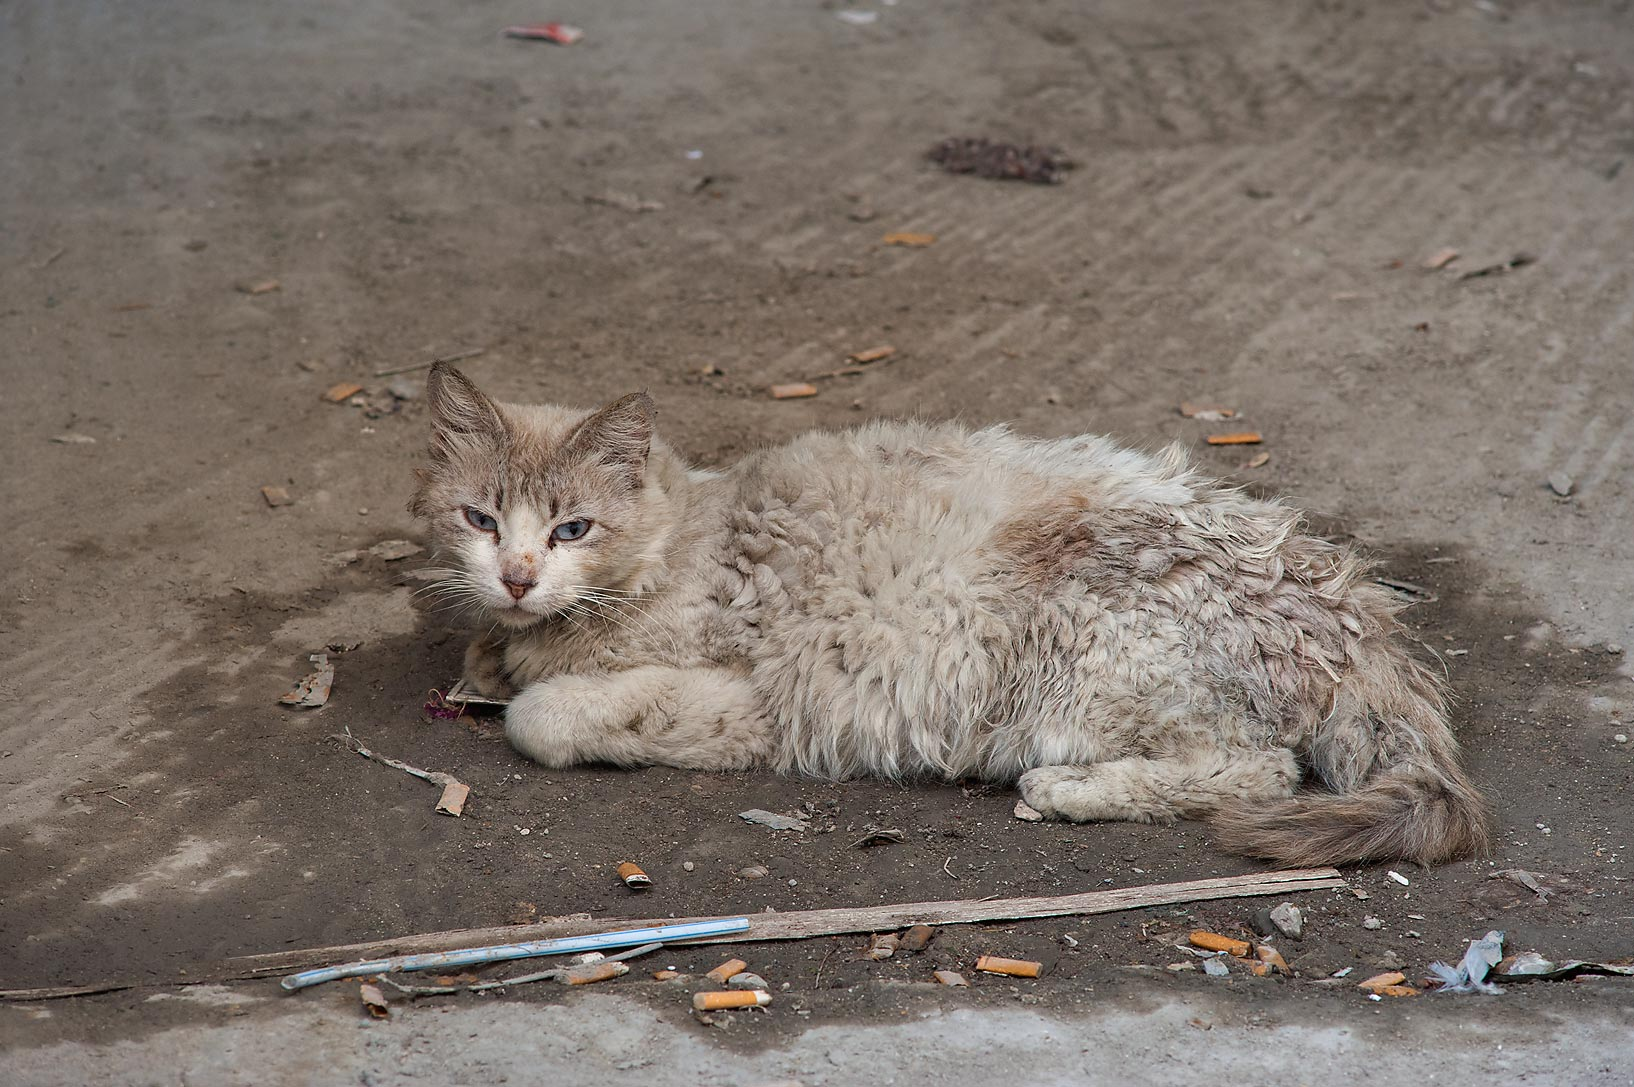 Sheep like cat near Al Maymoun St. in Musheirib area. Doha, Qatar